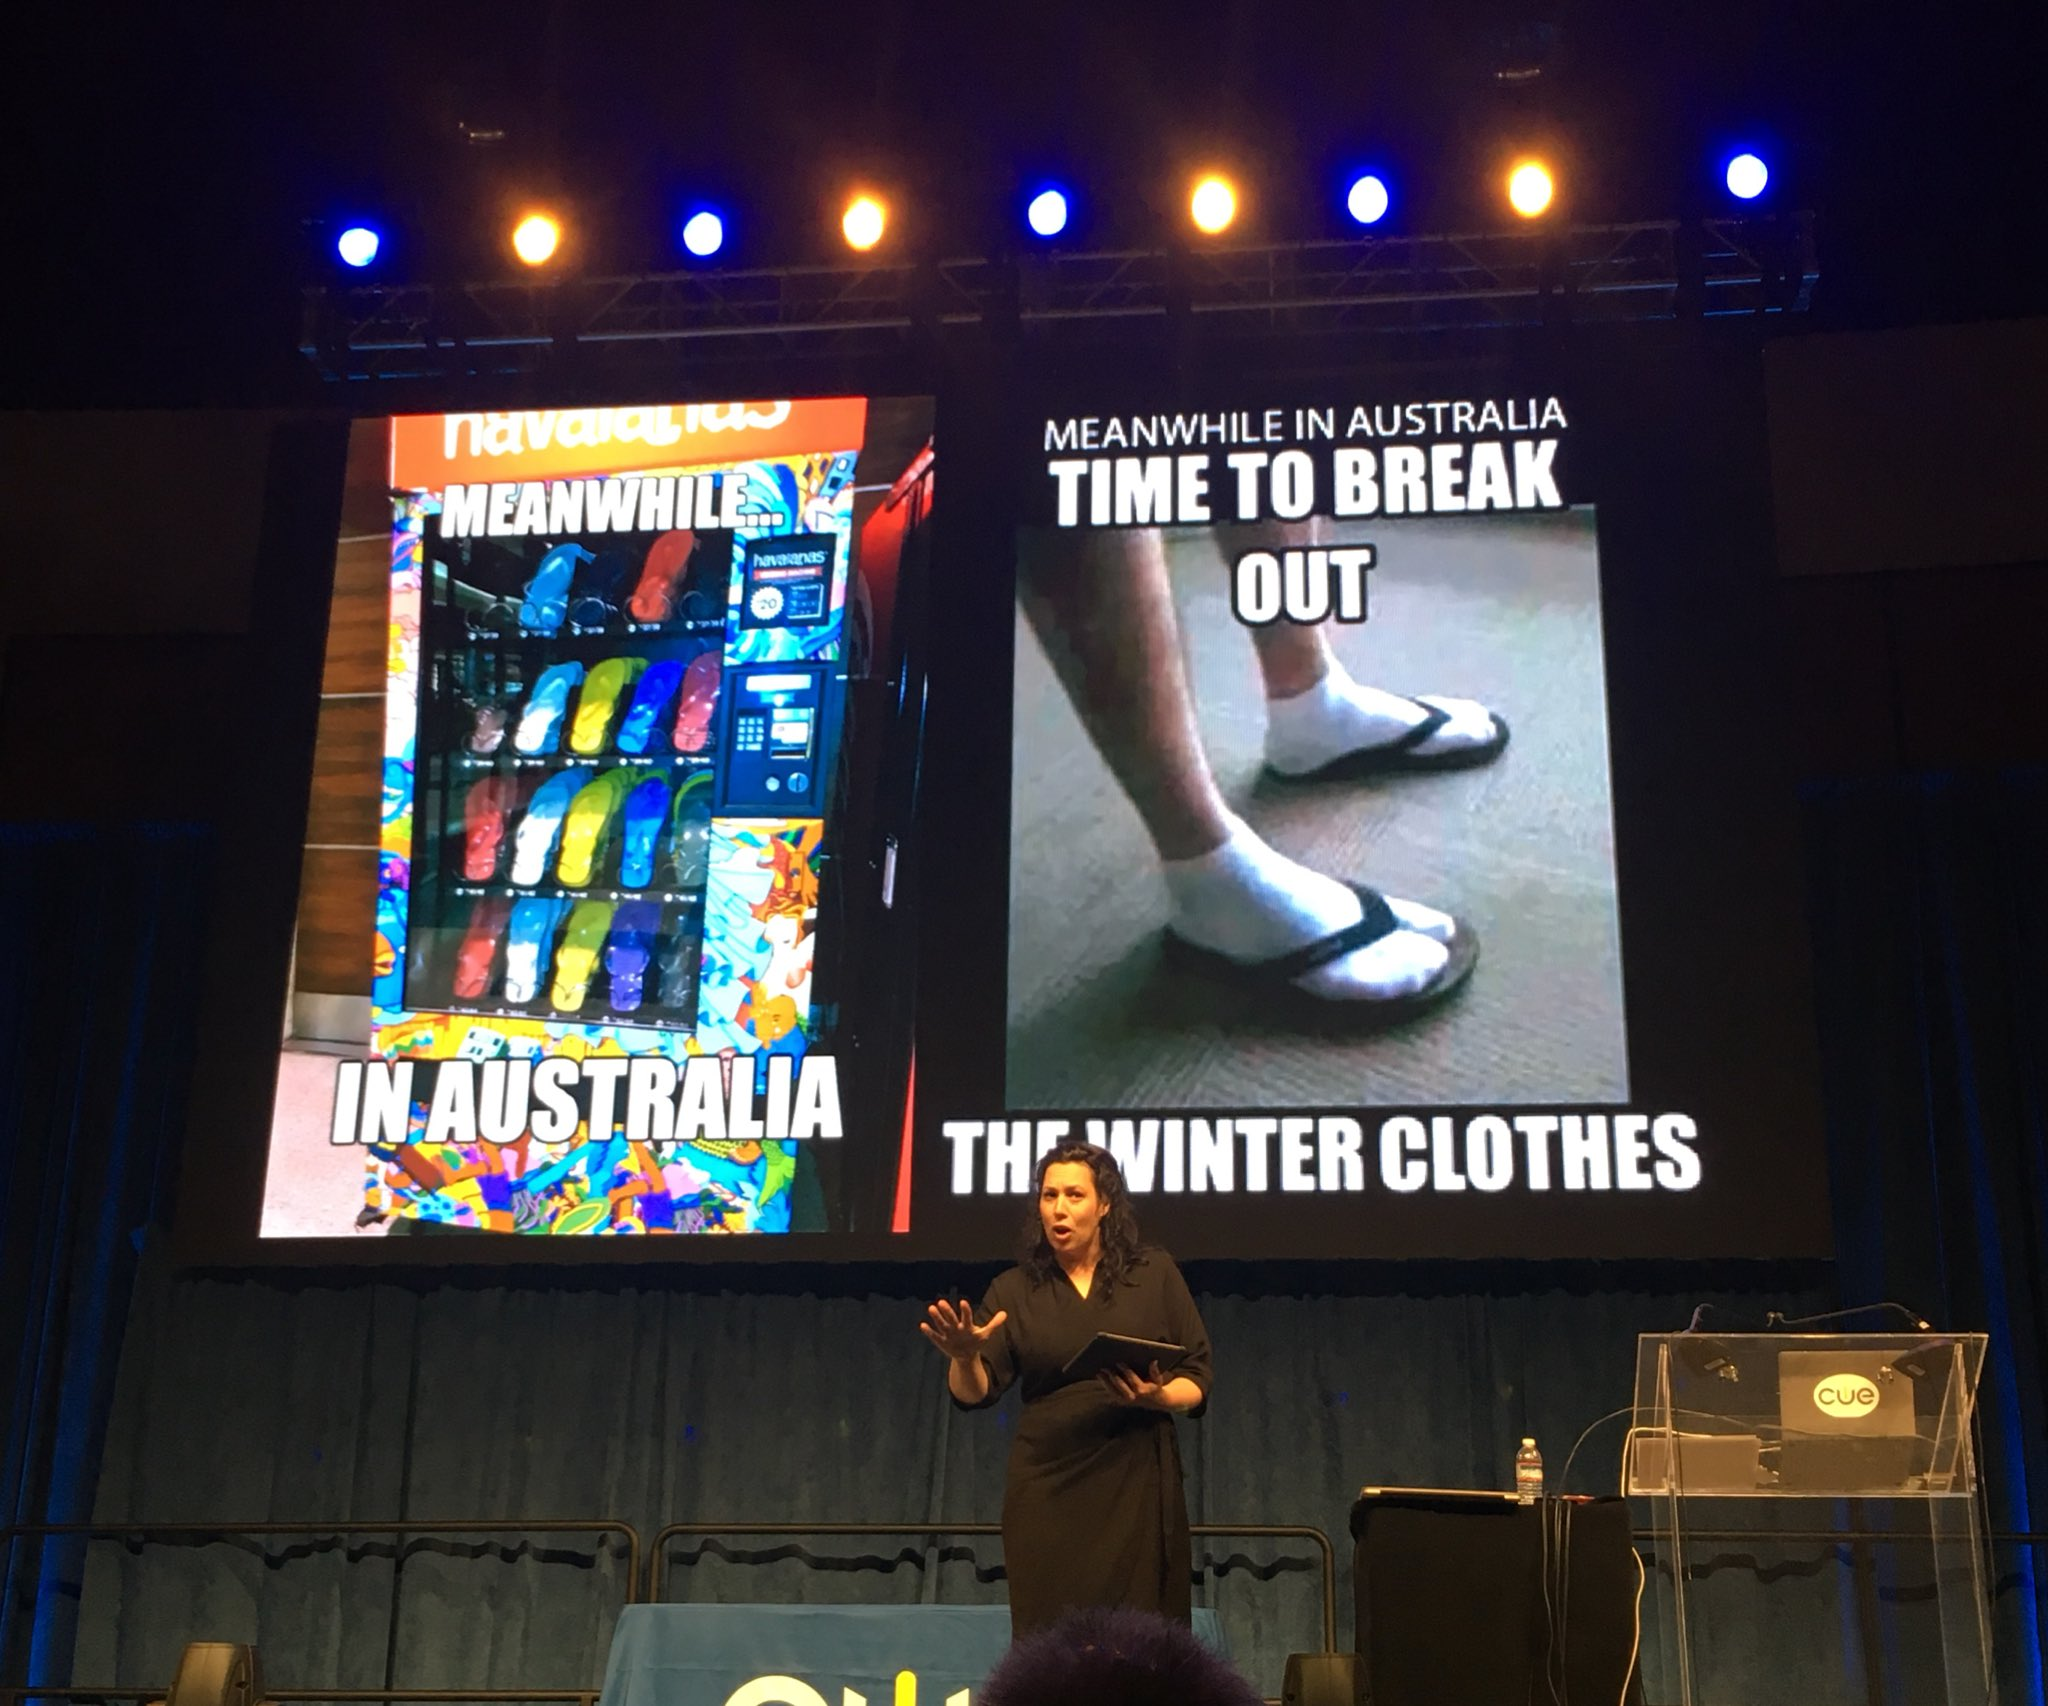 Why aren't there flip flop vending machines in CA?! @art_cathyhunt is already ROCKING her closing Keynote at #cue17 https://t.co/yOQ0JfNhvs